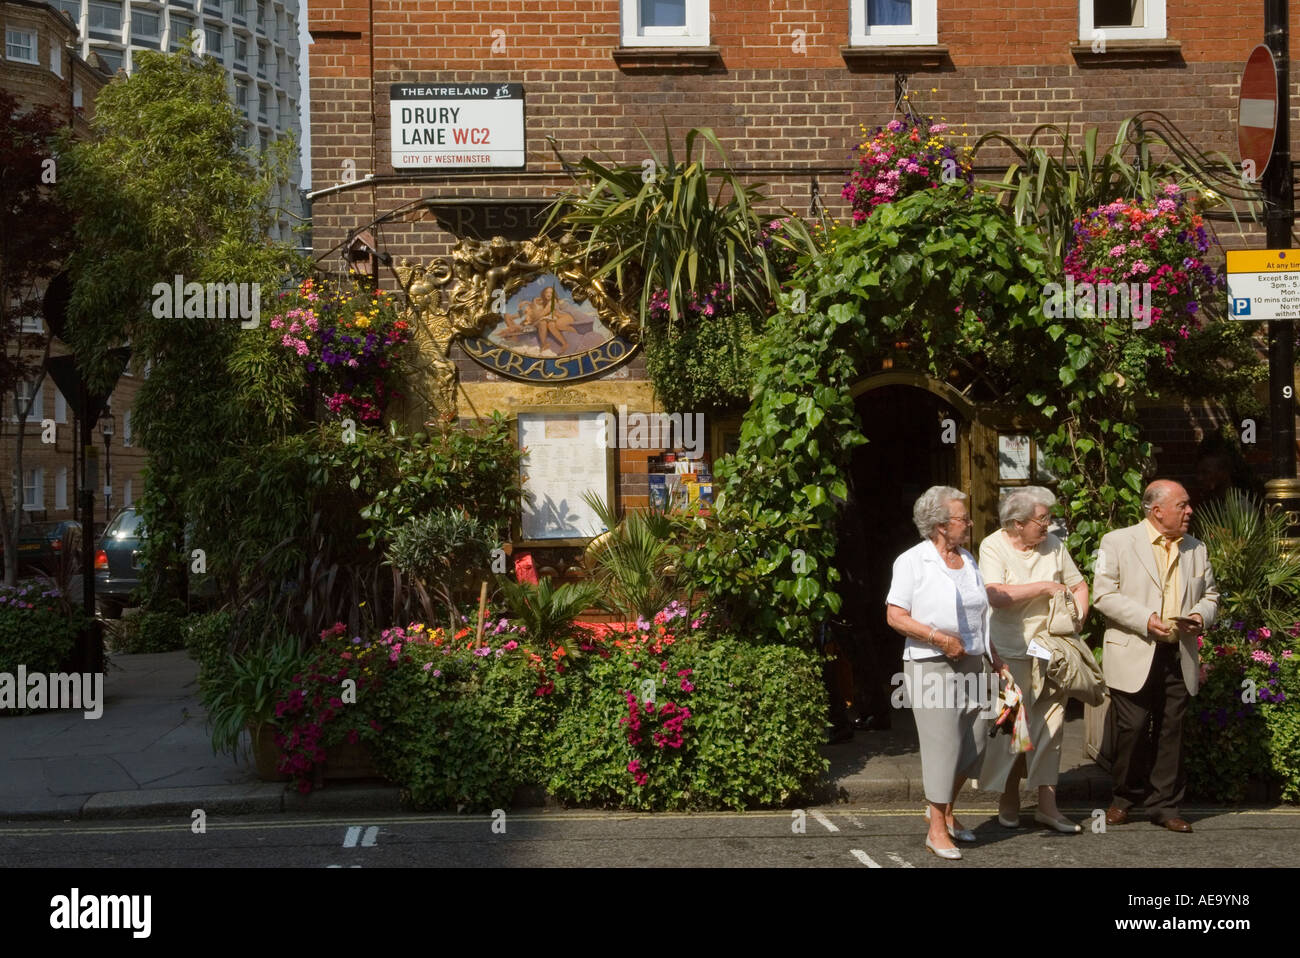 """""""Covent Garden""""  west central London England Three older tourists leave a restaurant in 'Drury Lane' WC2 - Stock Image"""